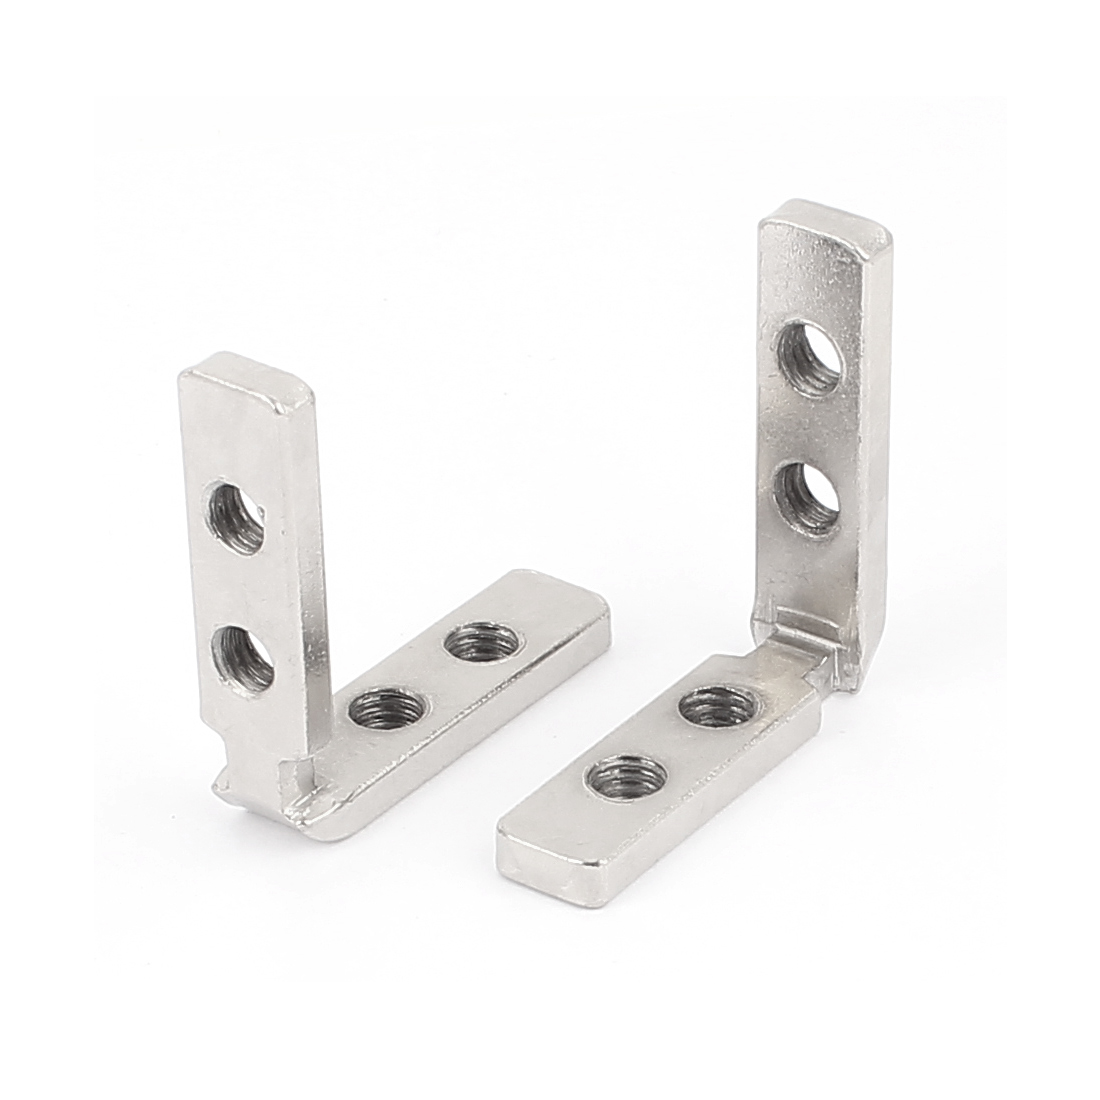 50mmx50mm Shelf Support Corner Brace Joint Metal Right Angle Bracket 2pcs